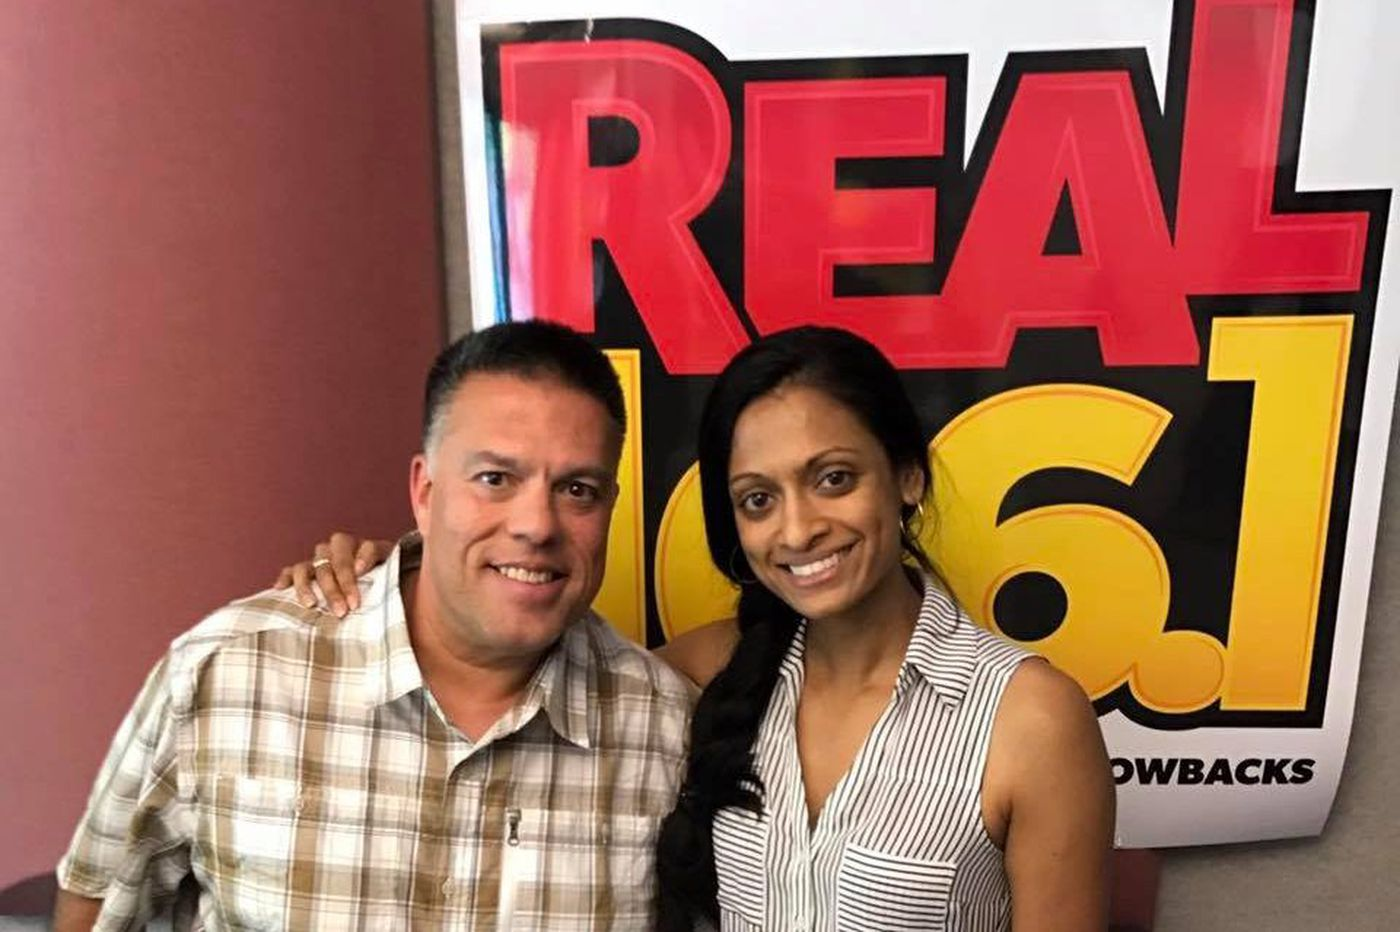 Real 106.1 on-air staff out, rebrands as 'The Breeze' in format change